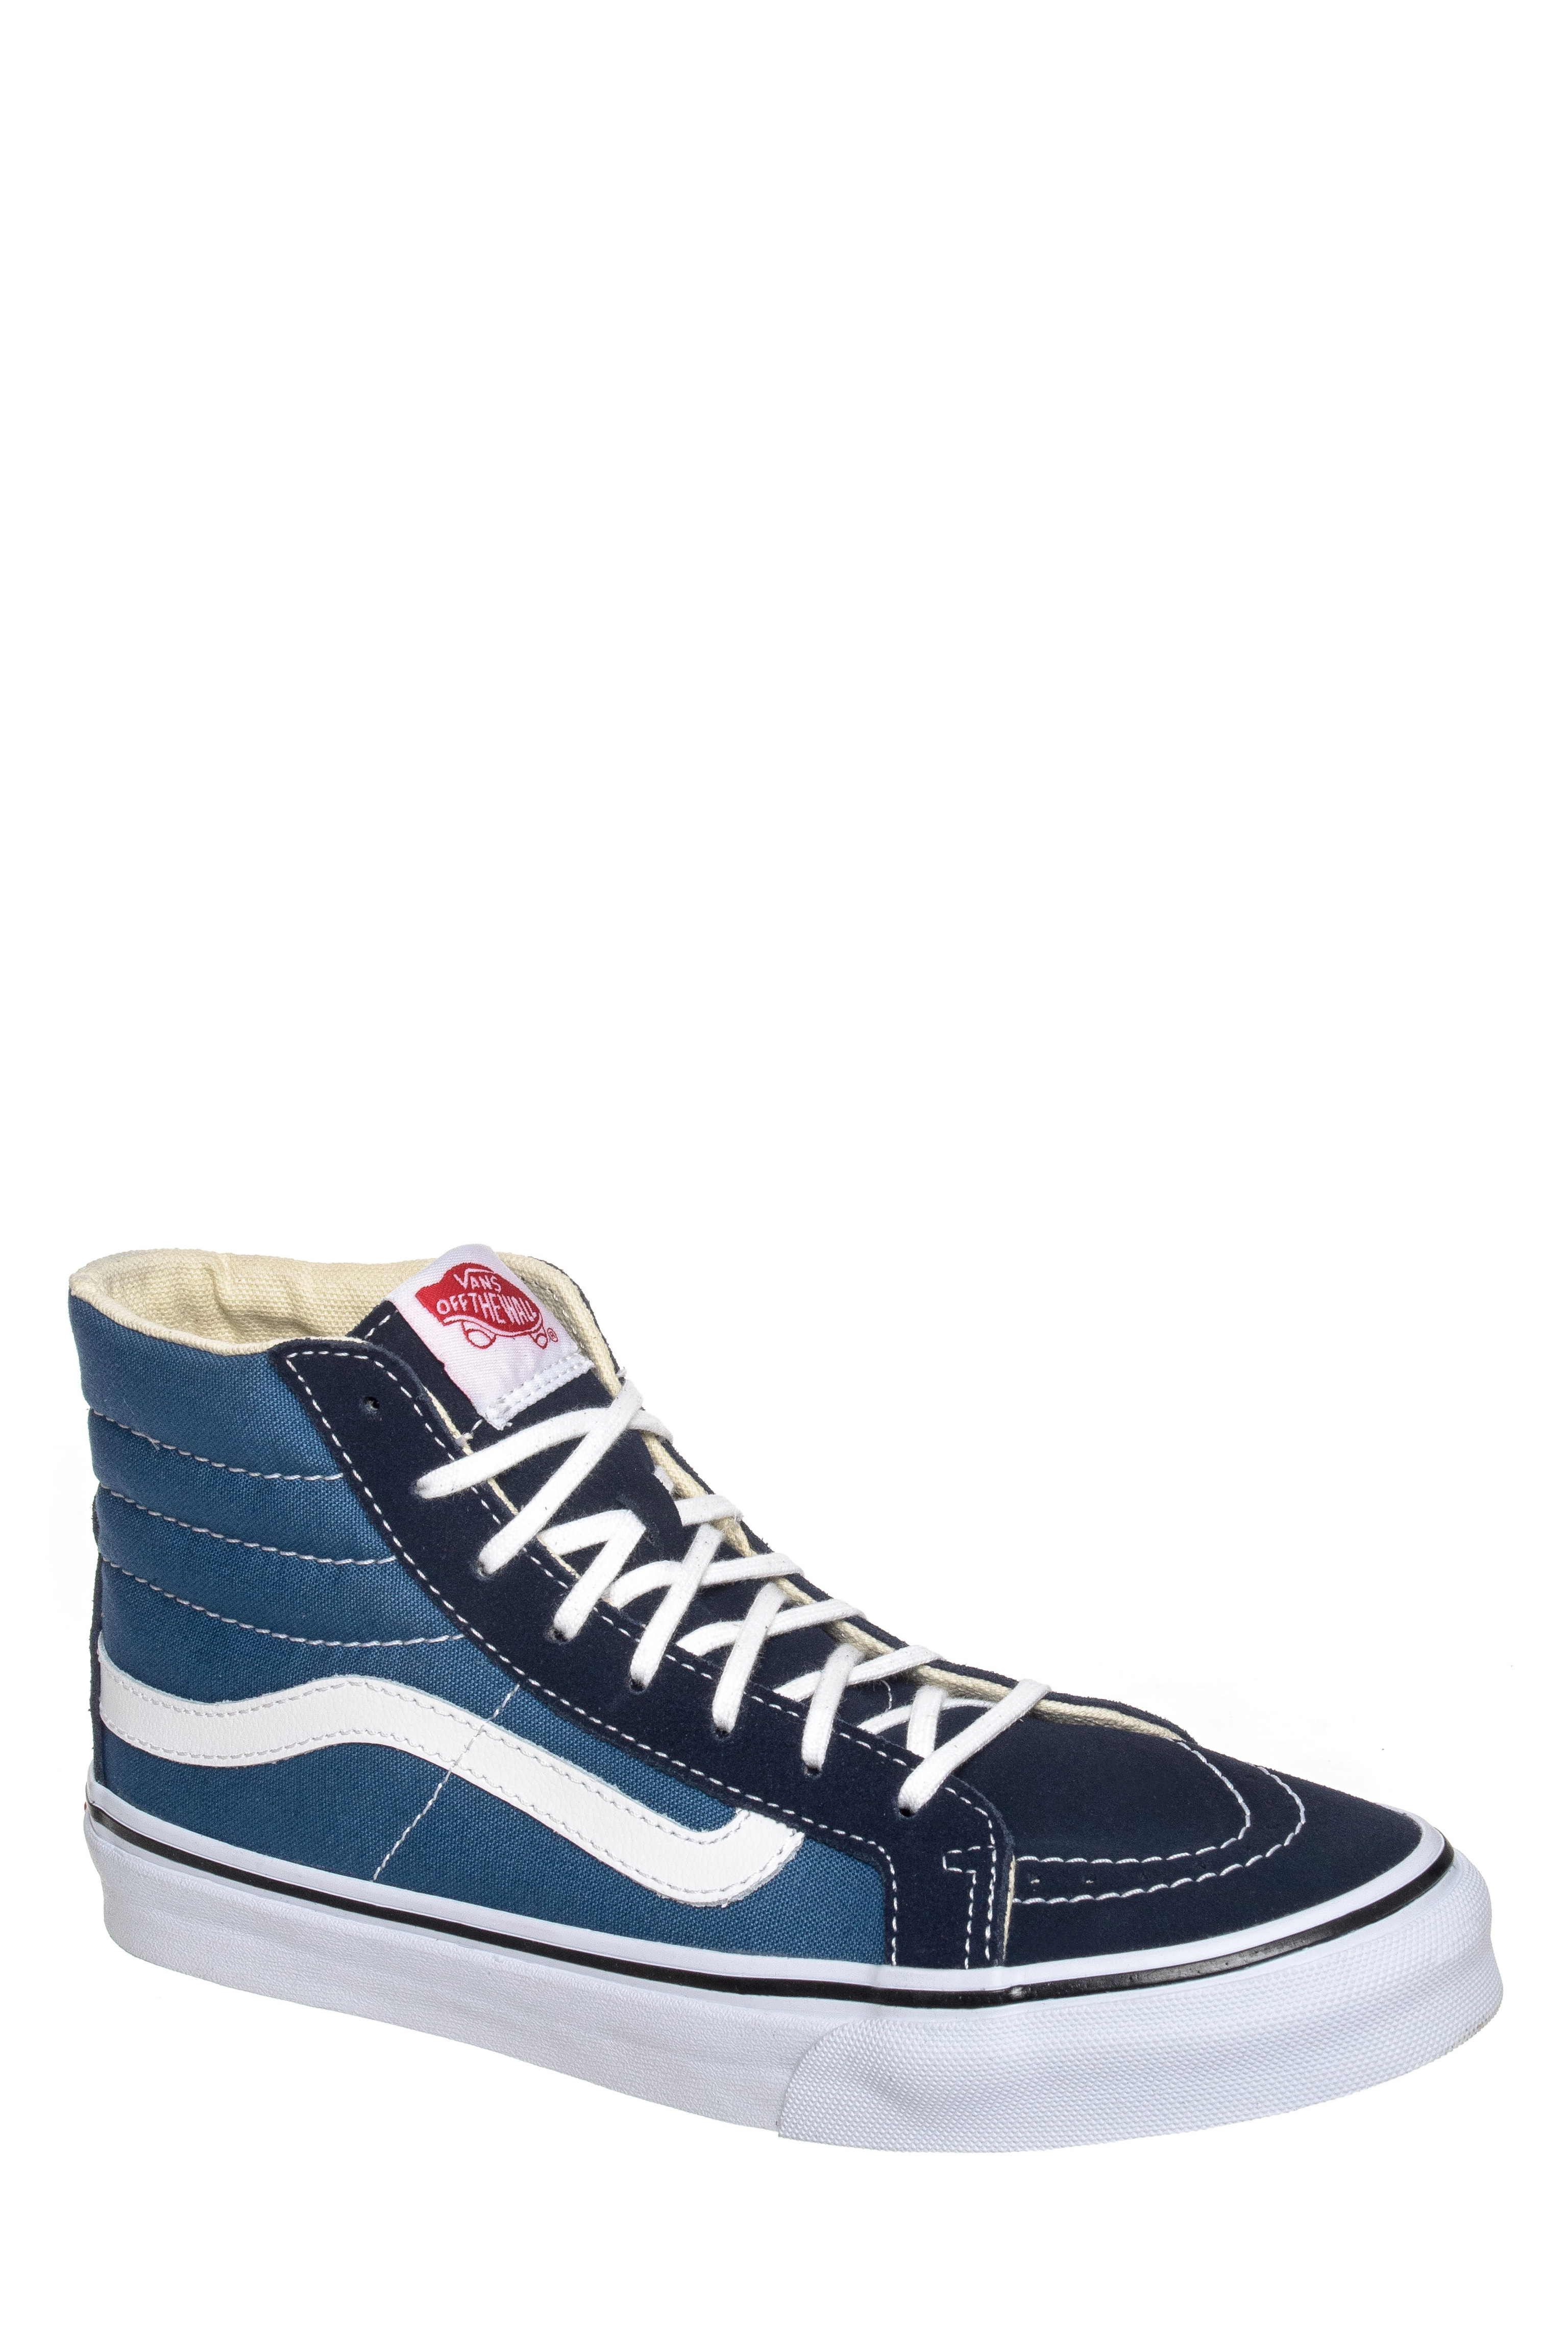 Vans Sk8-Hi Slim High Top Sneakers - Navy / True White